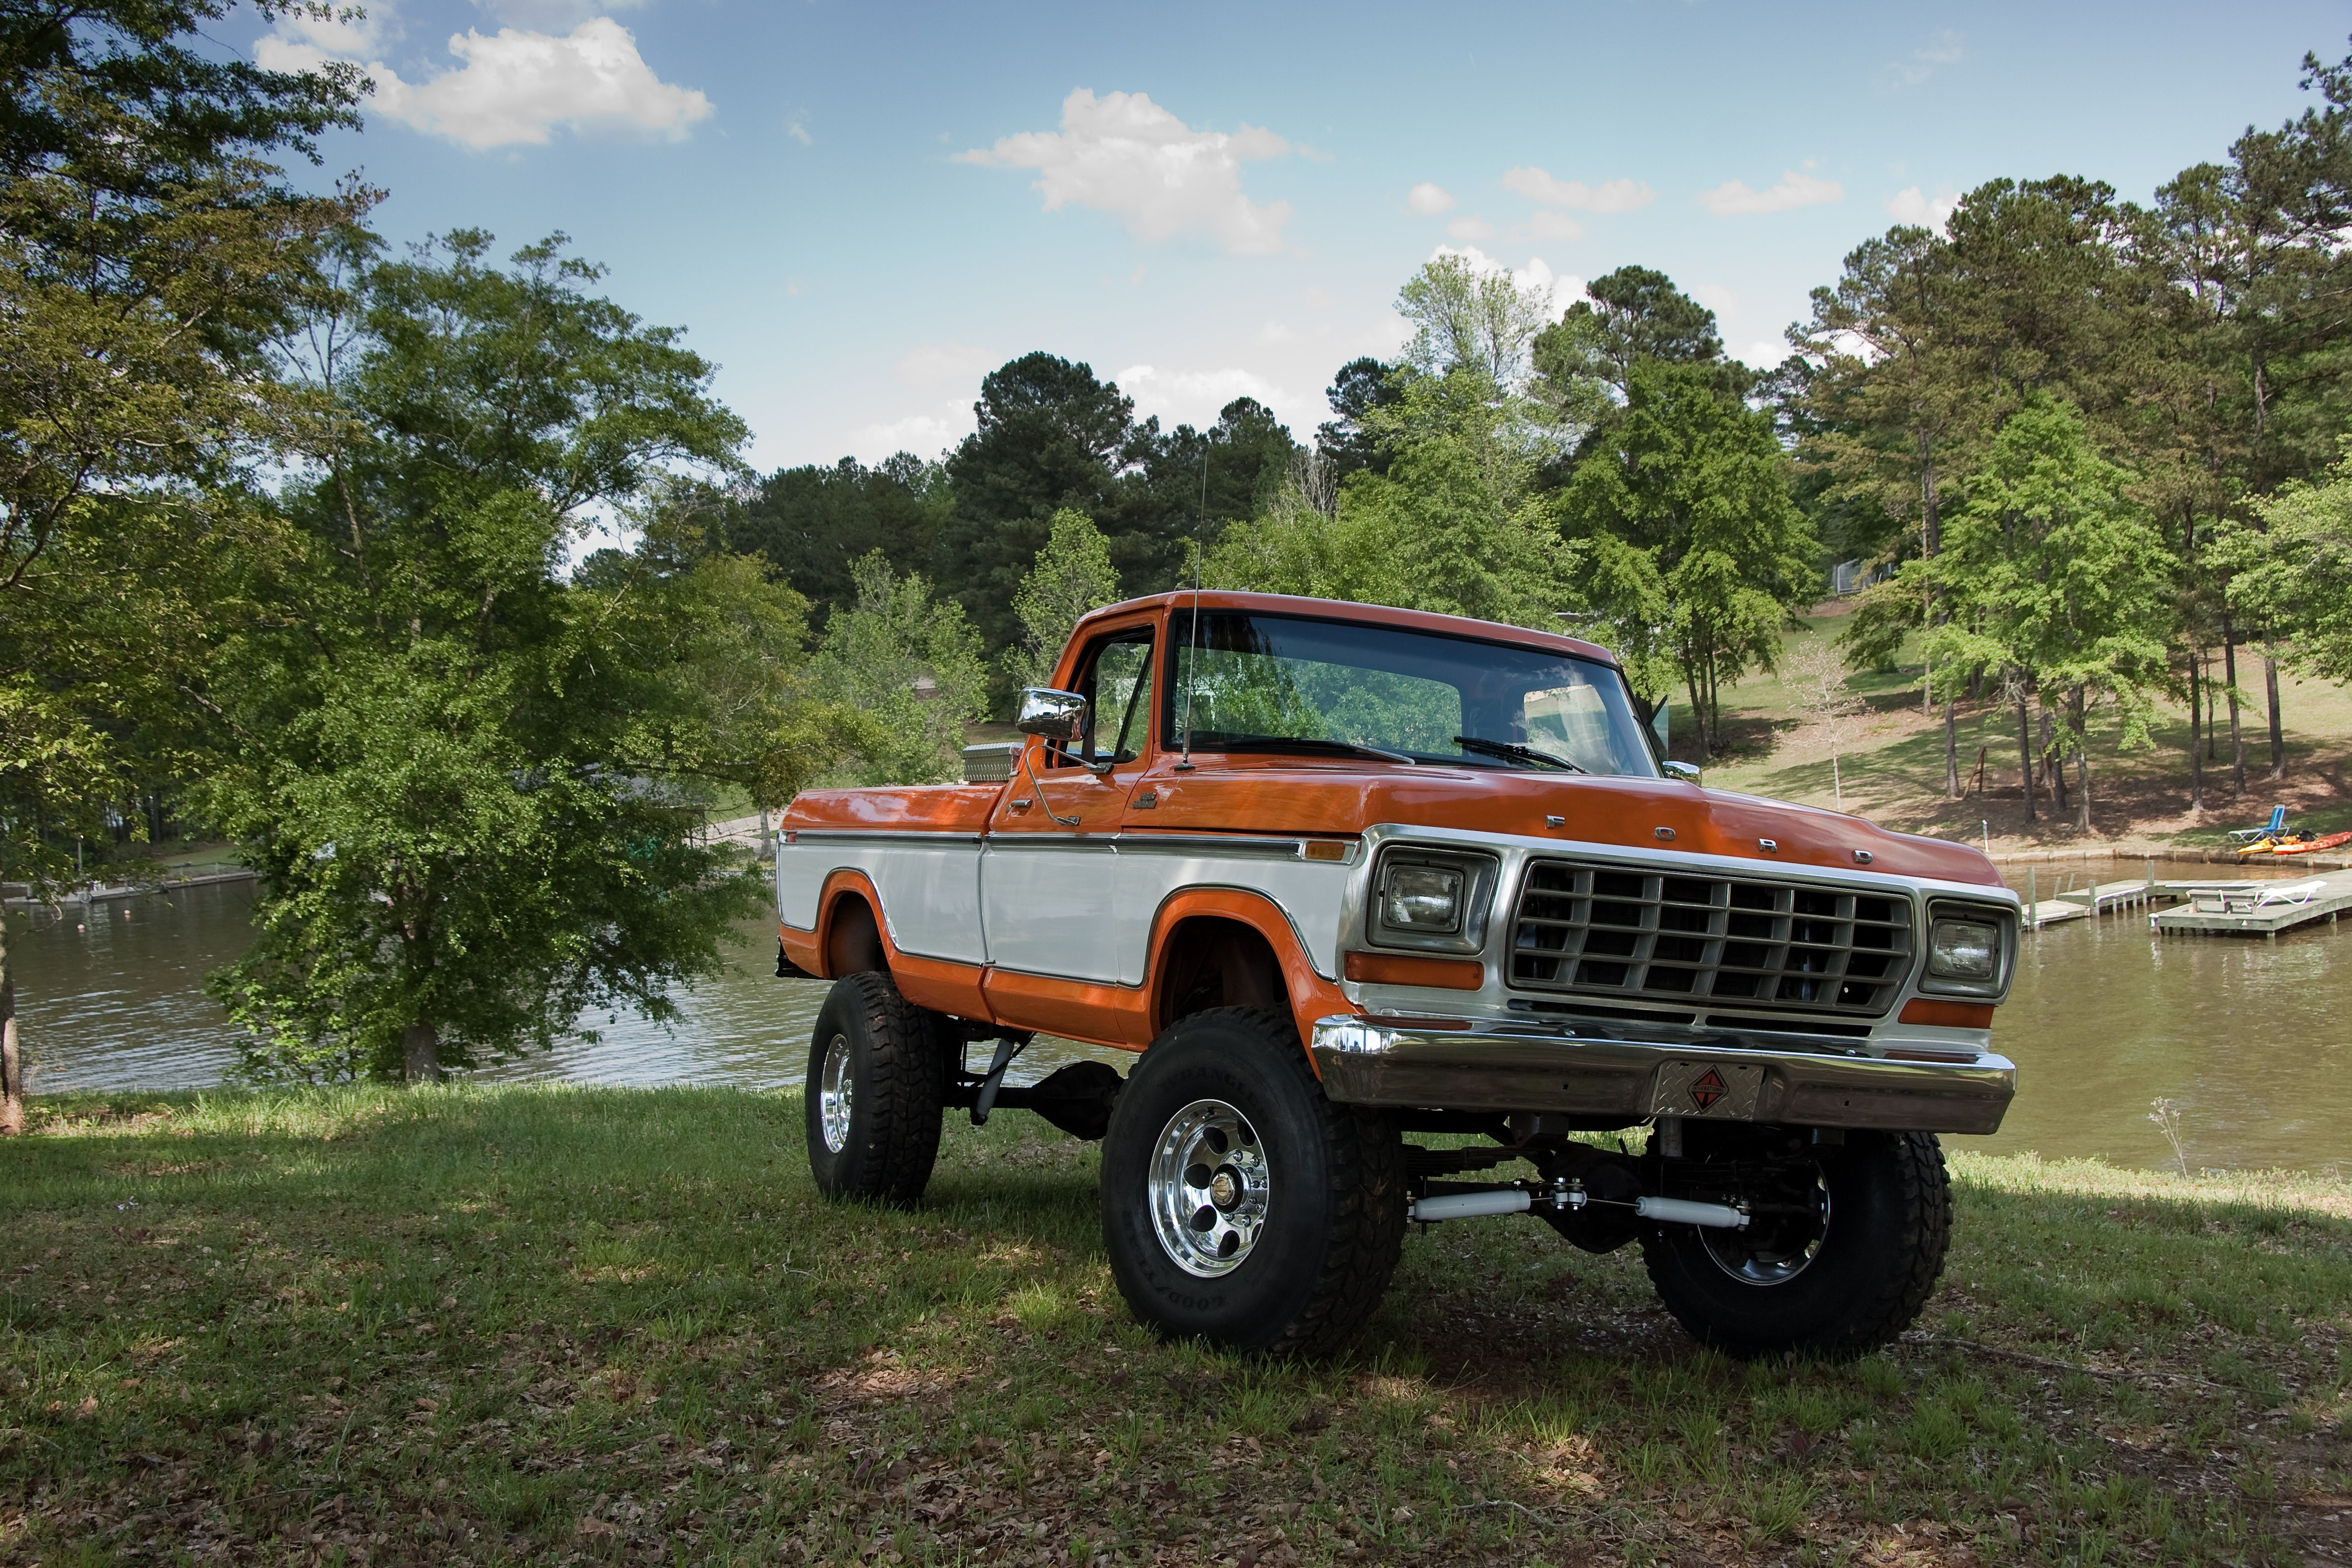 ford photo repair have i photos reviews auto david w orange united can wilsons ca states biz of